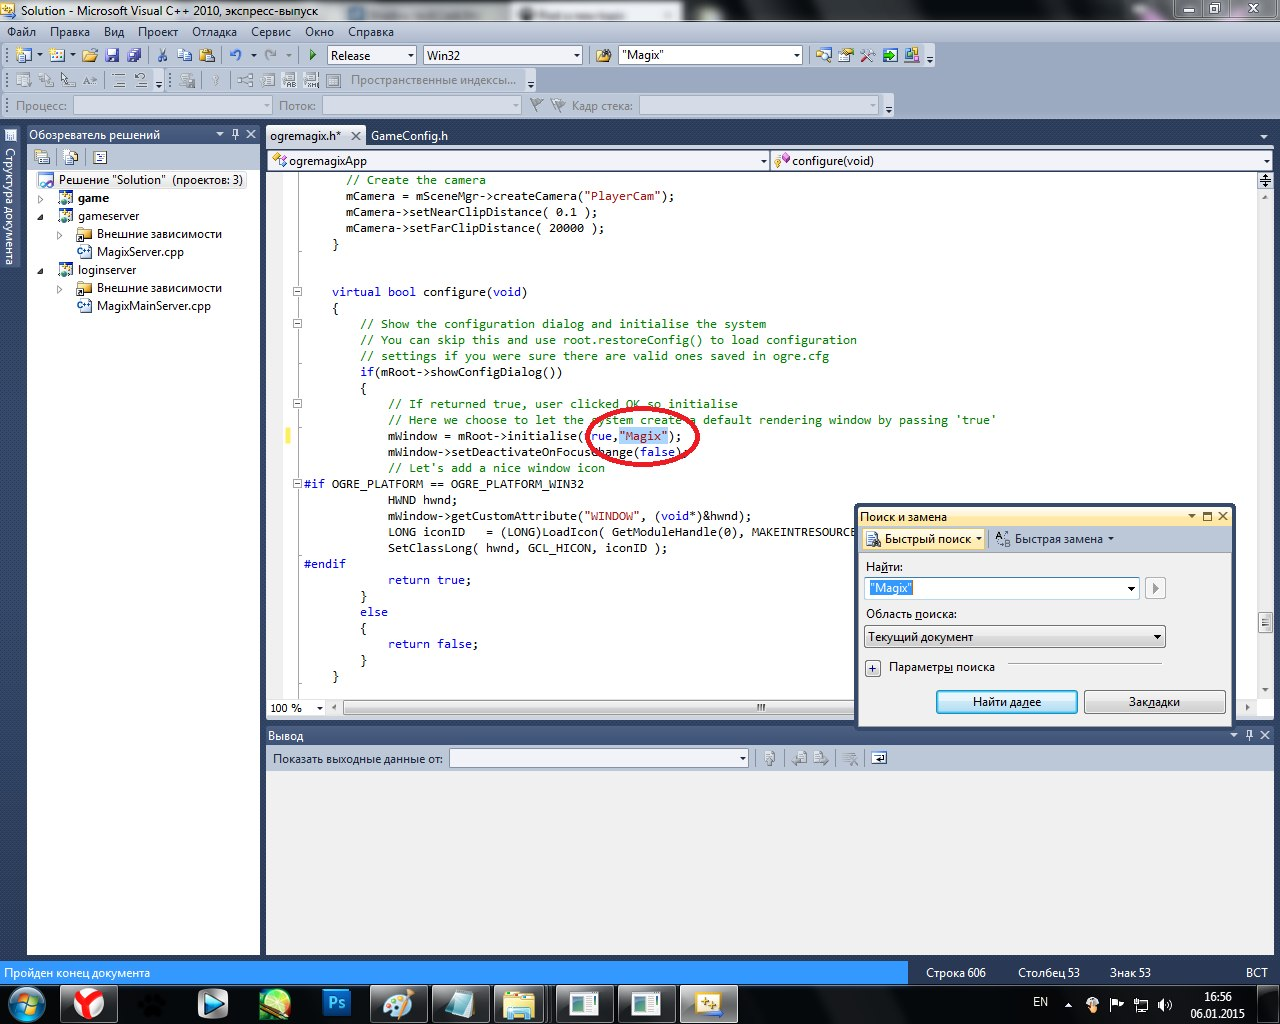 """tutorial - How to edit the """"Magix"""" text to your own (Tutorial) JX7qtuswsAU"""